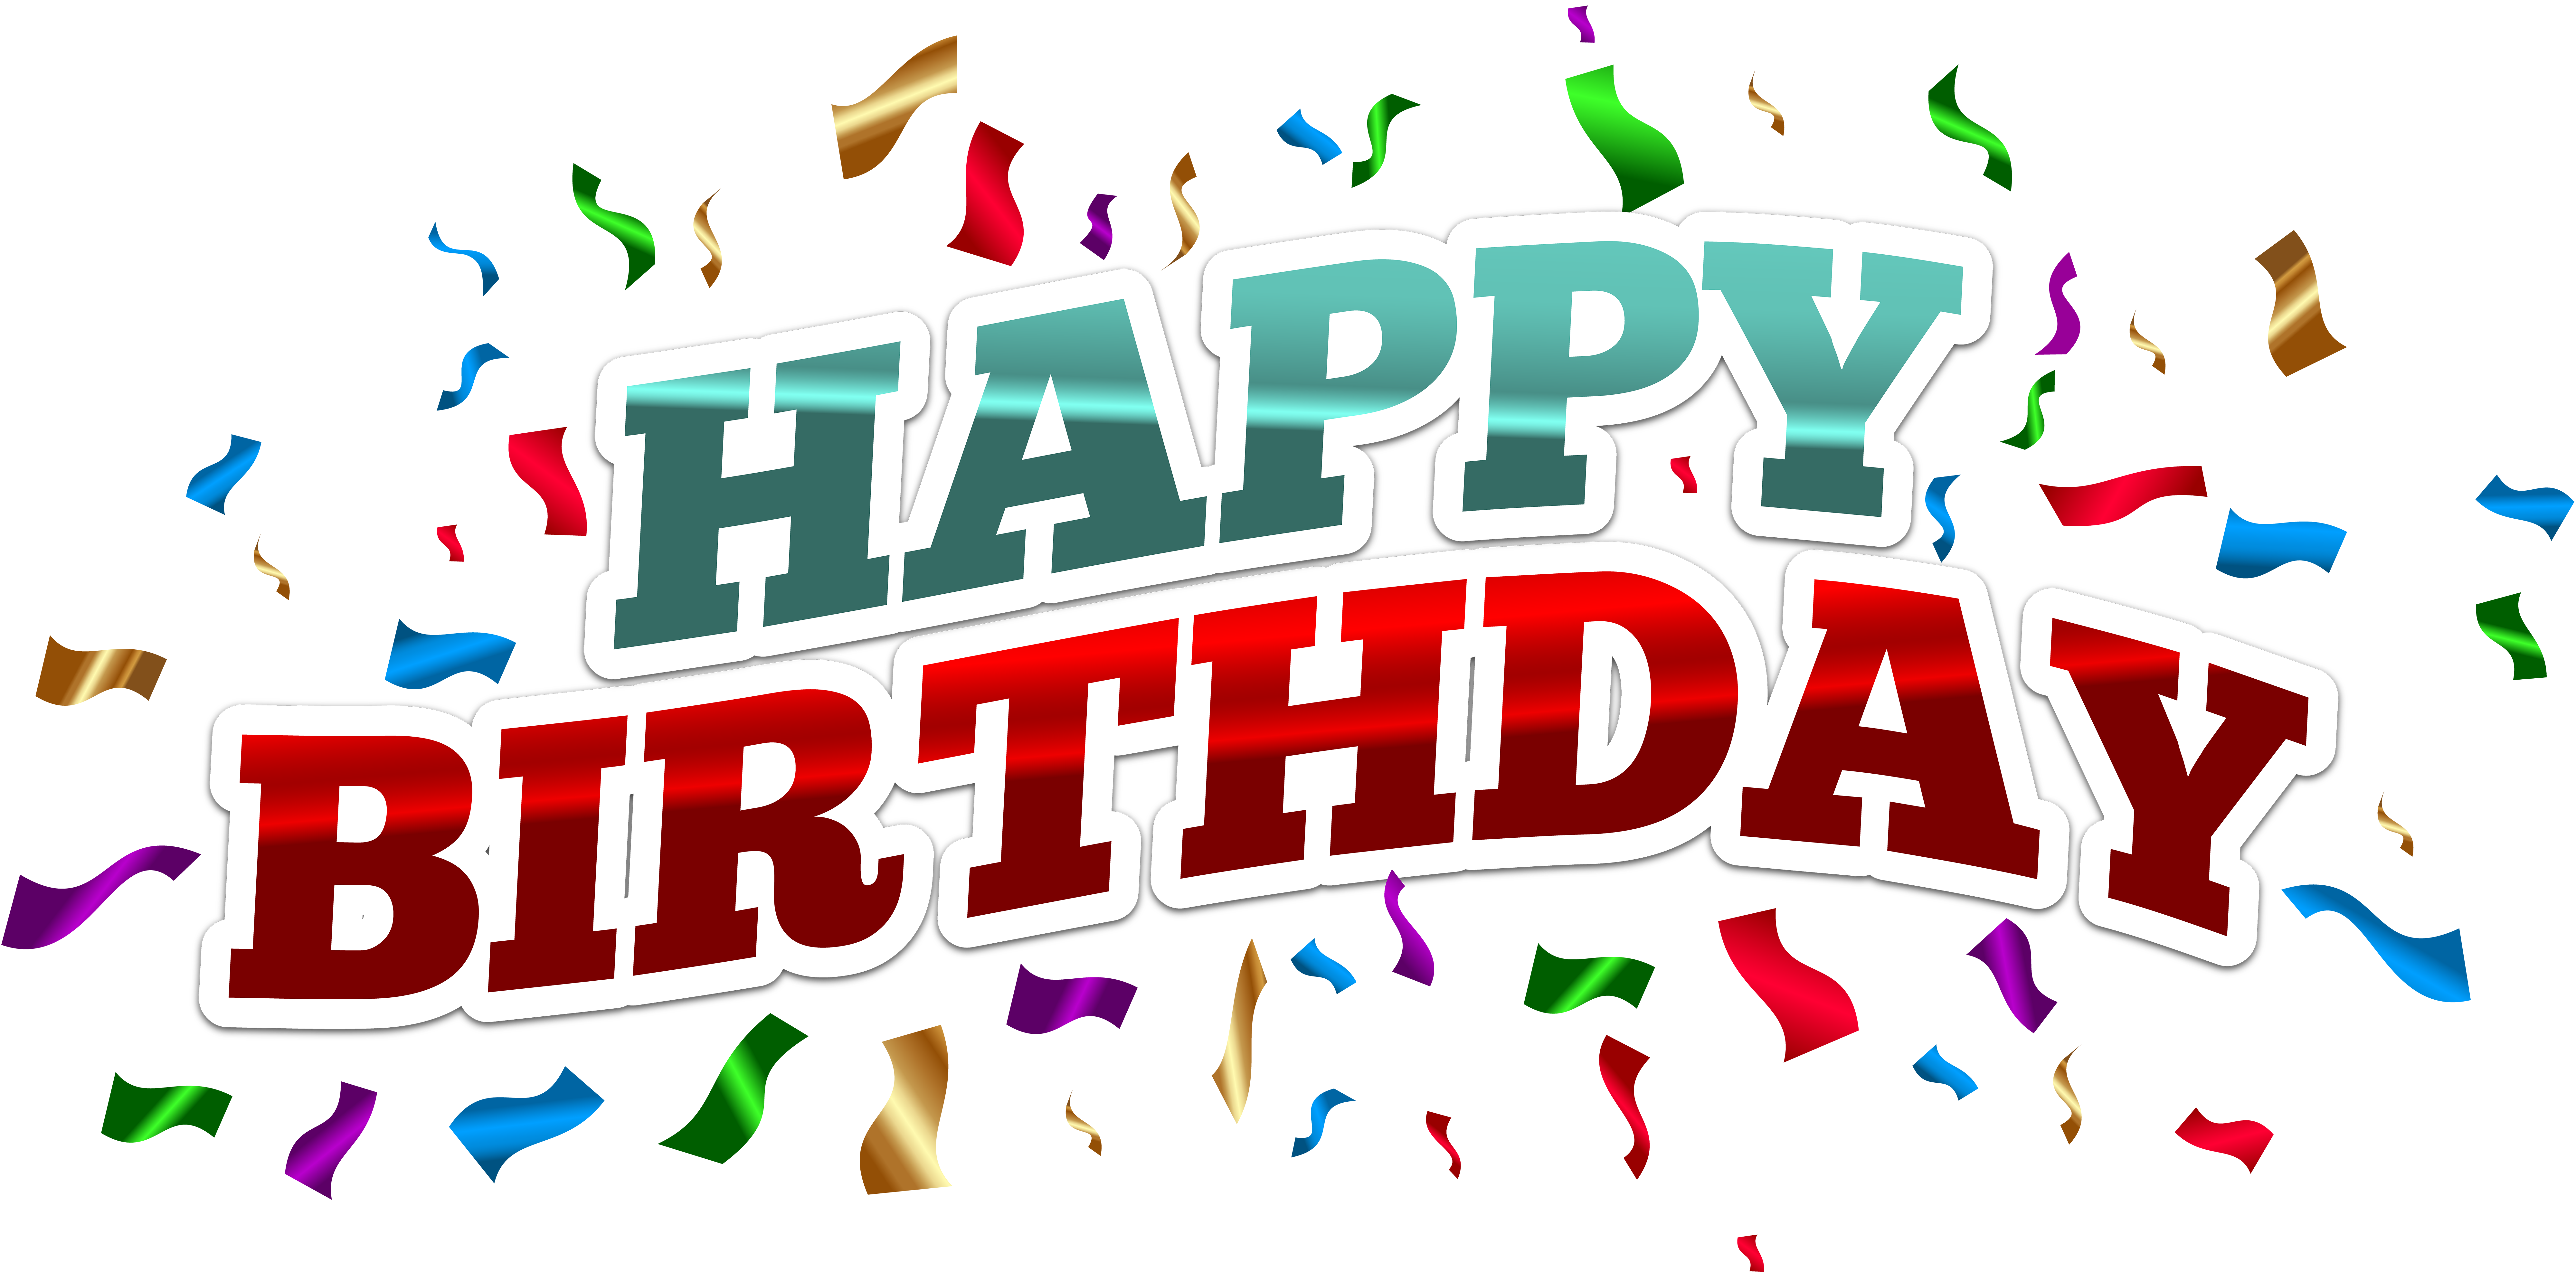 Happy birthday .png. Transparent image transparentpng download